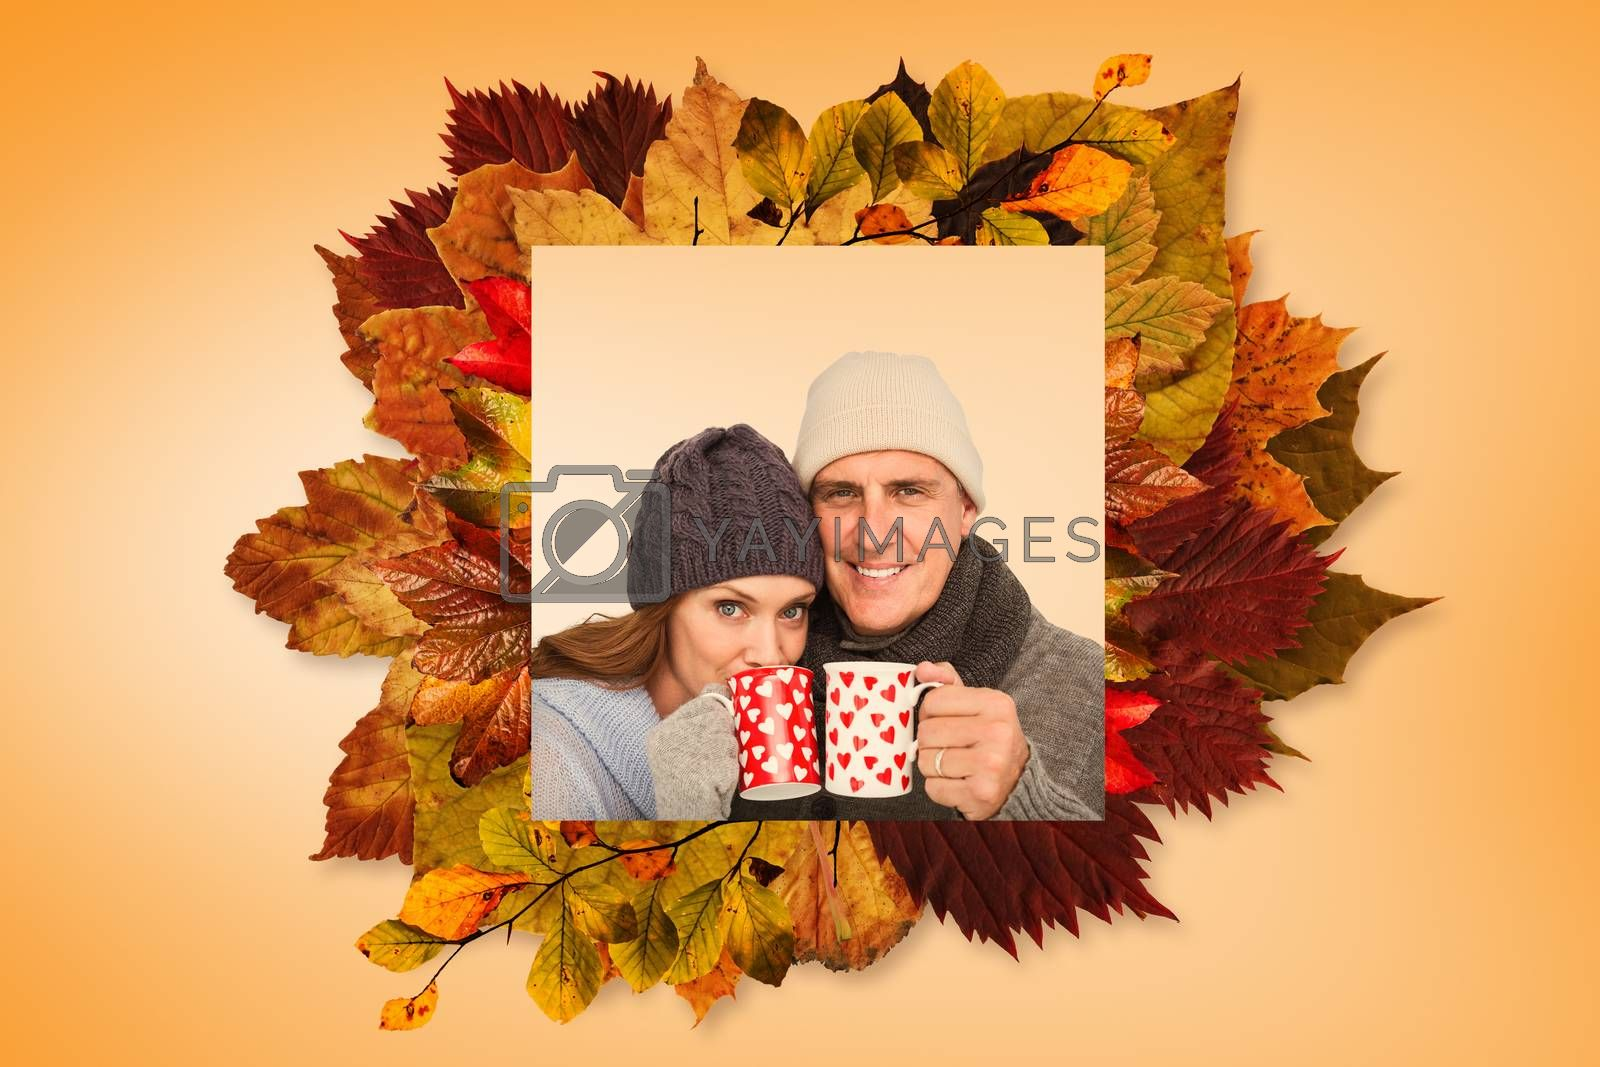 Happy couple in warm clothing holding mugs against autumn leaves pattern